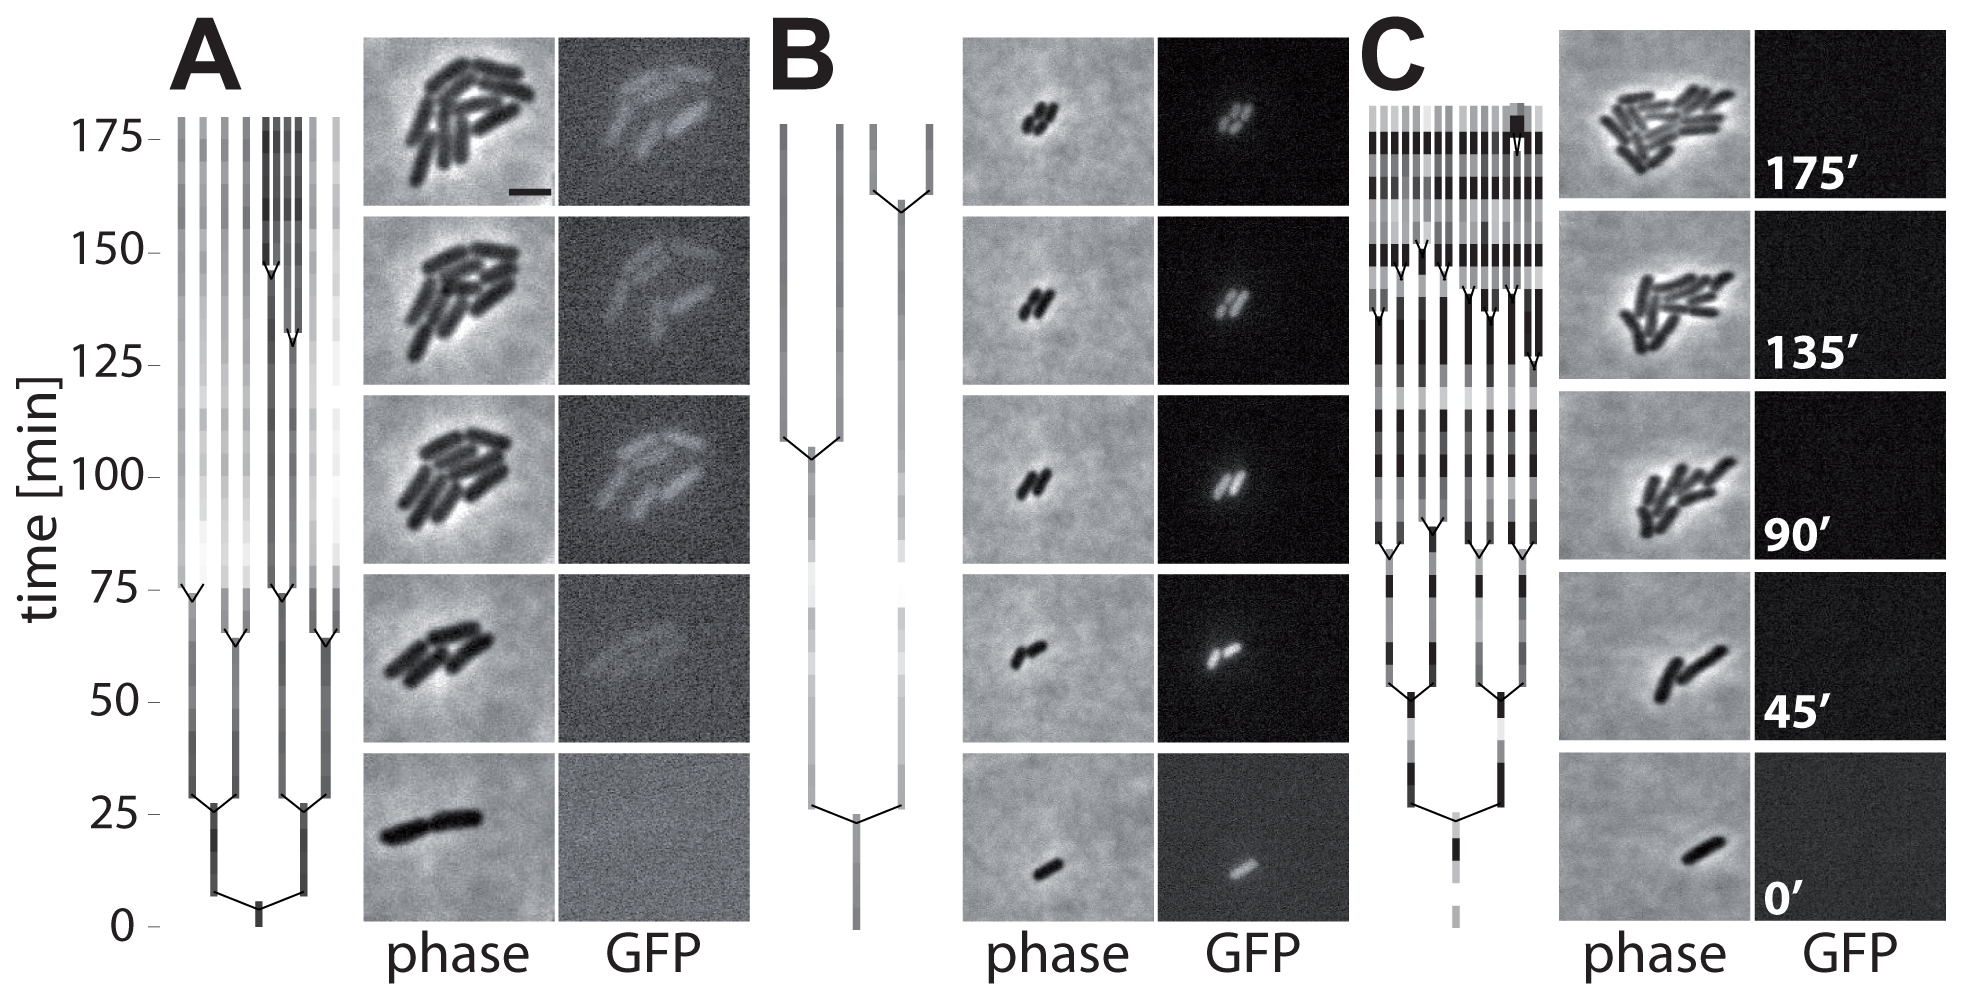 Time-lapse microscopy shows onset of <i>ttss-1</i> expression and concomitant growth retardation.